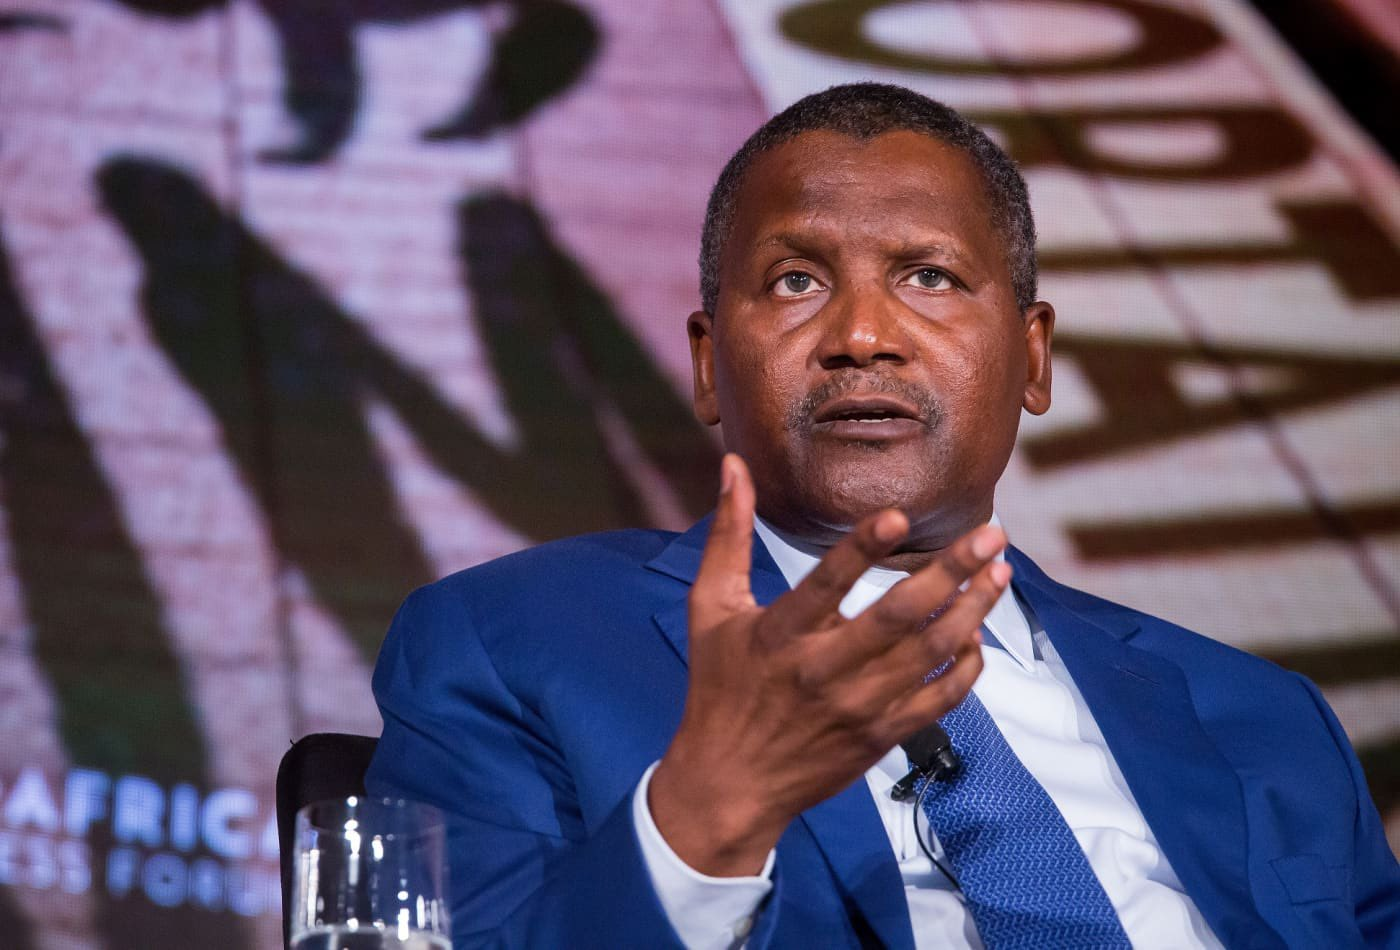 Africa's richest man, Alike Dangote